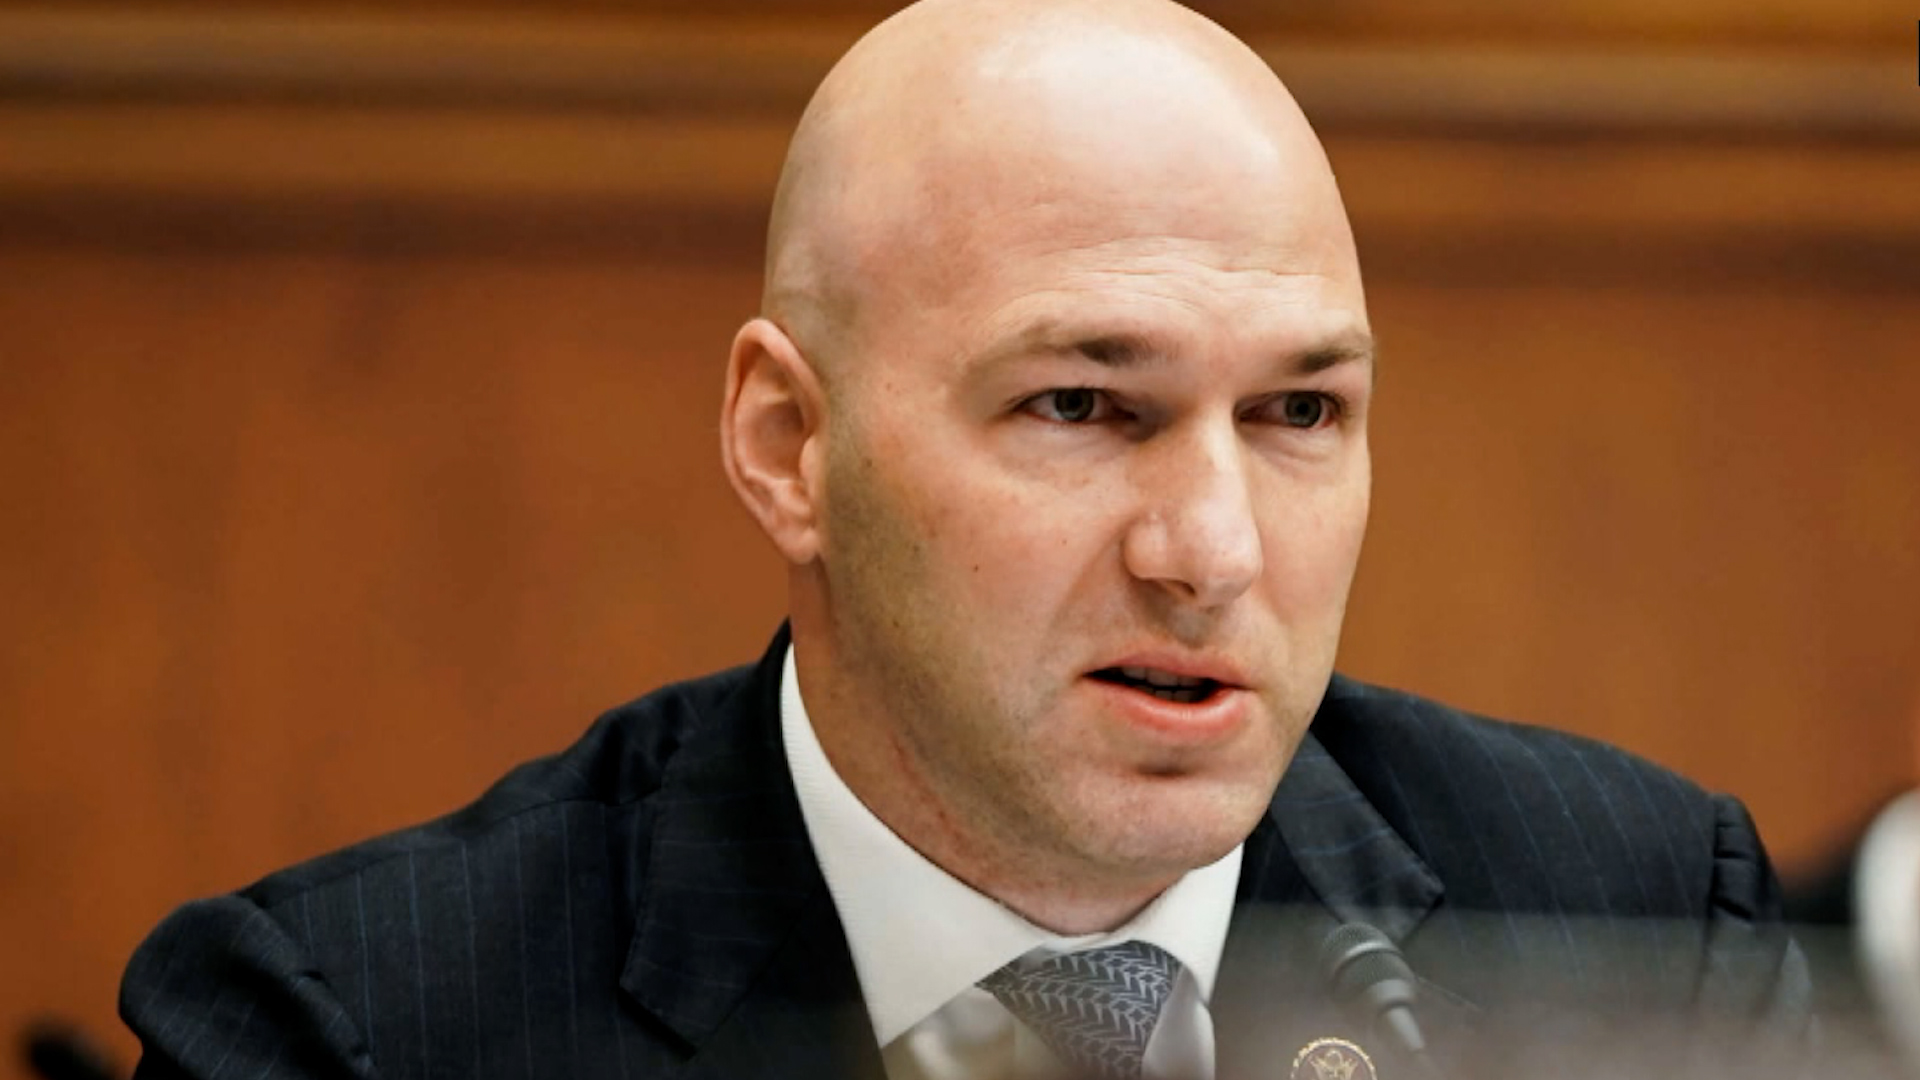 Ohio GOP Central Committee votes to censure Rep. Anthony Gonzalez, calls for resignation